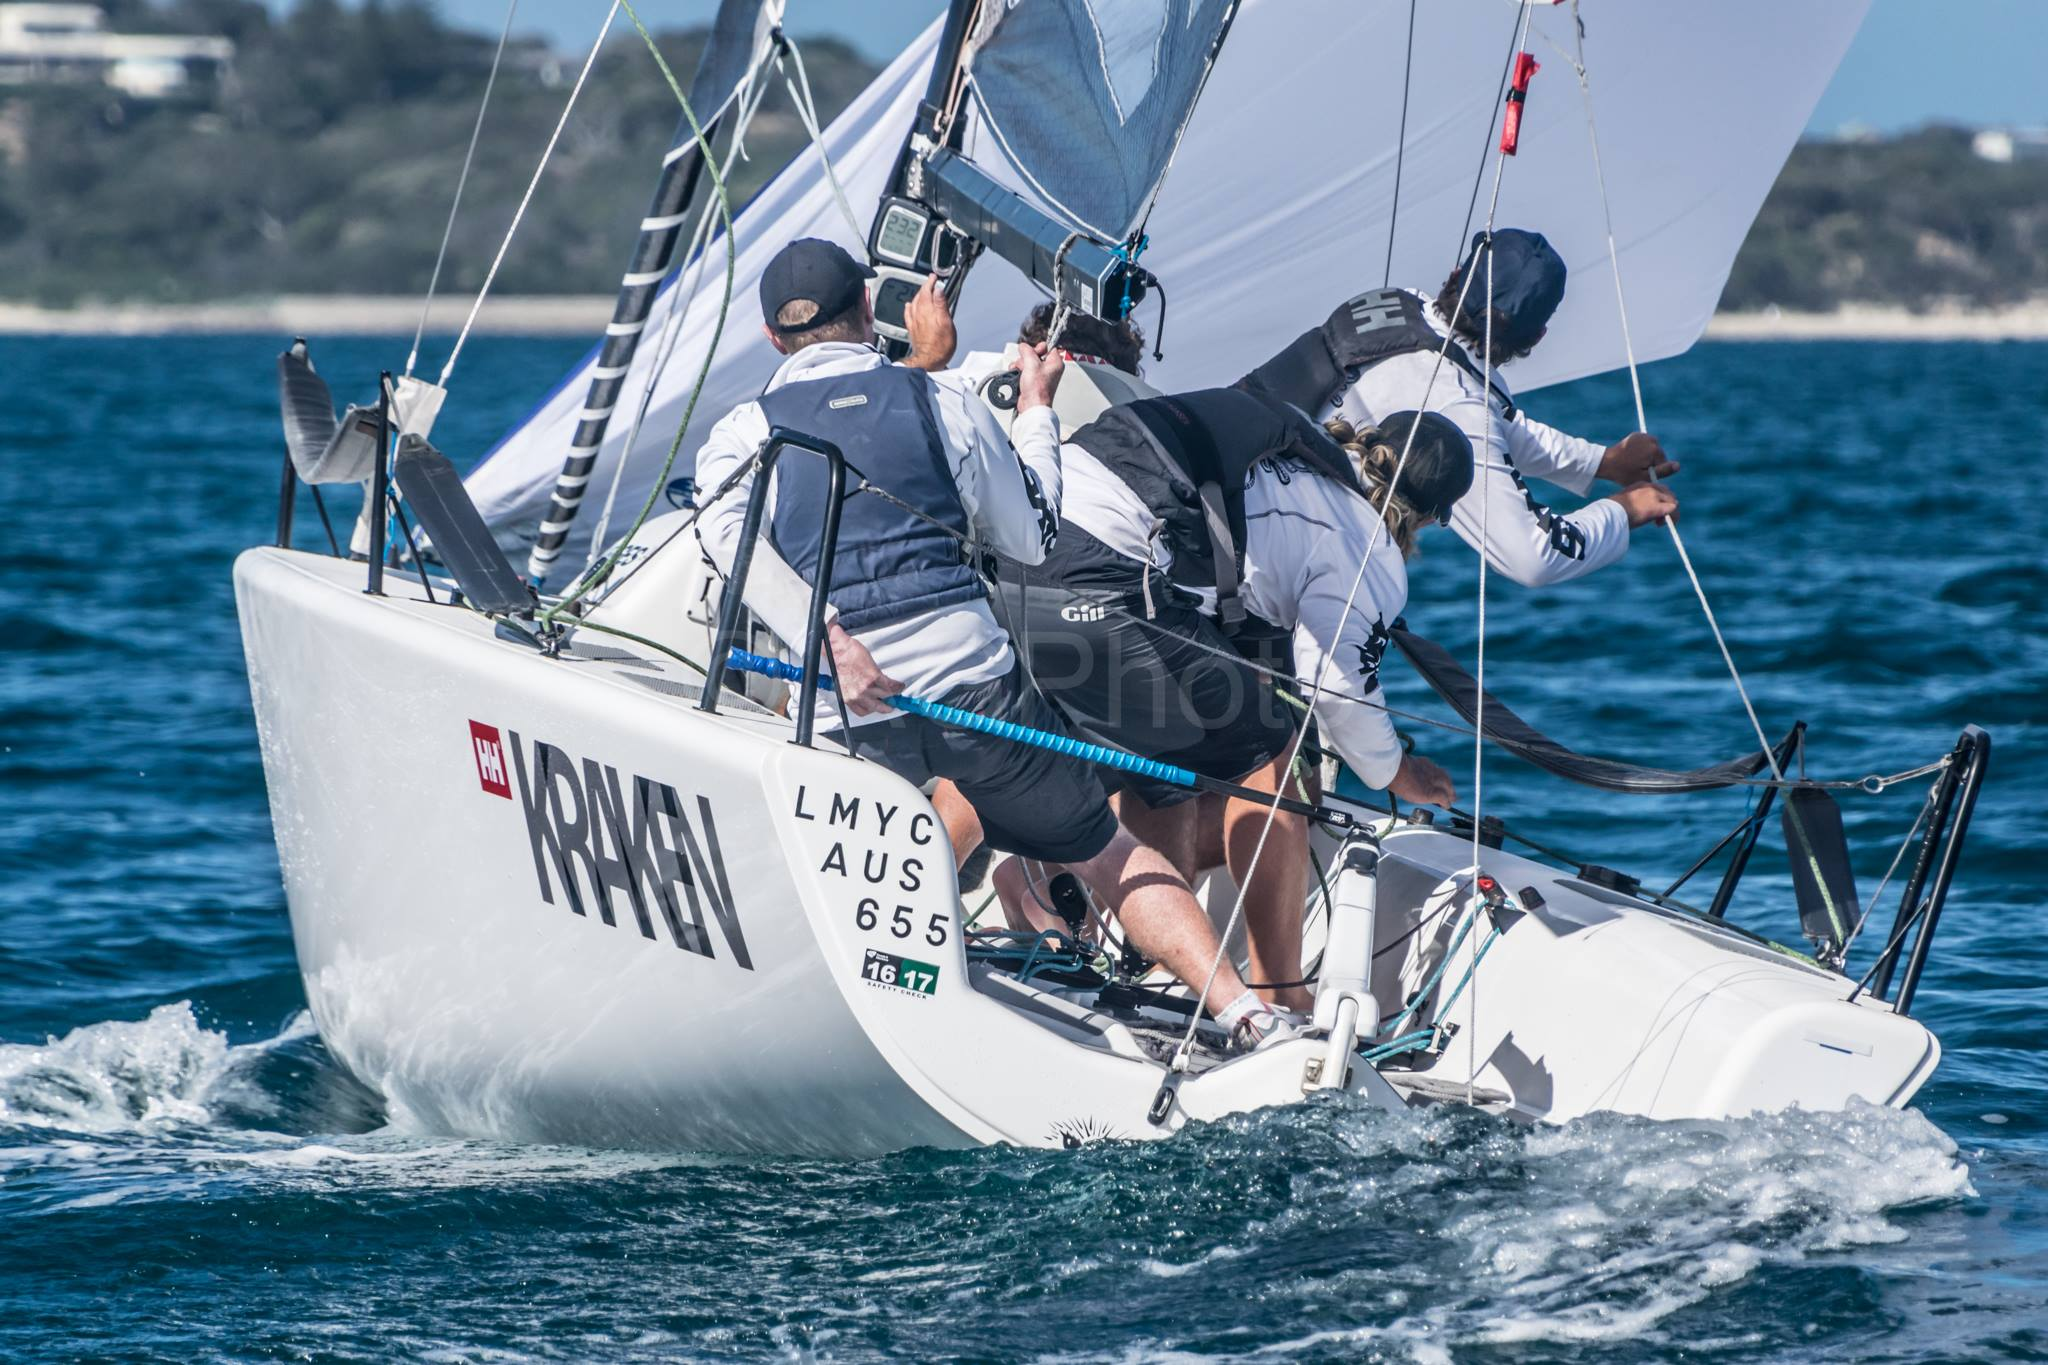 Dave Young and Kraken AUS655 - Melges 24